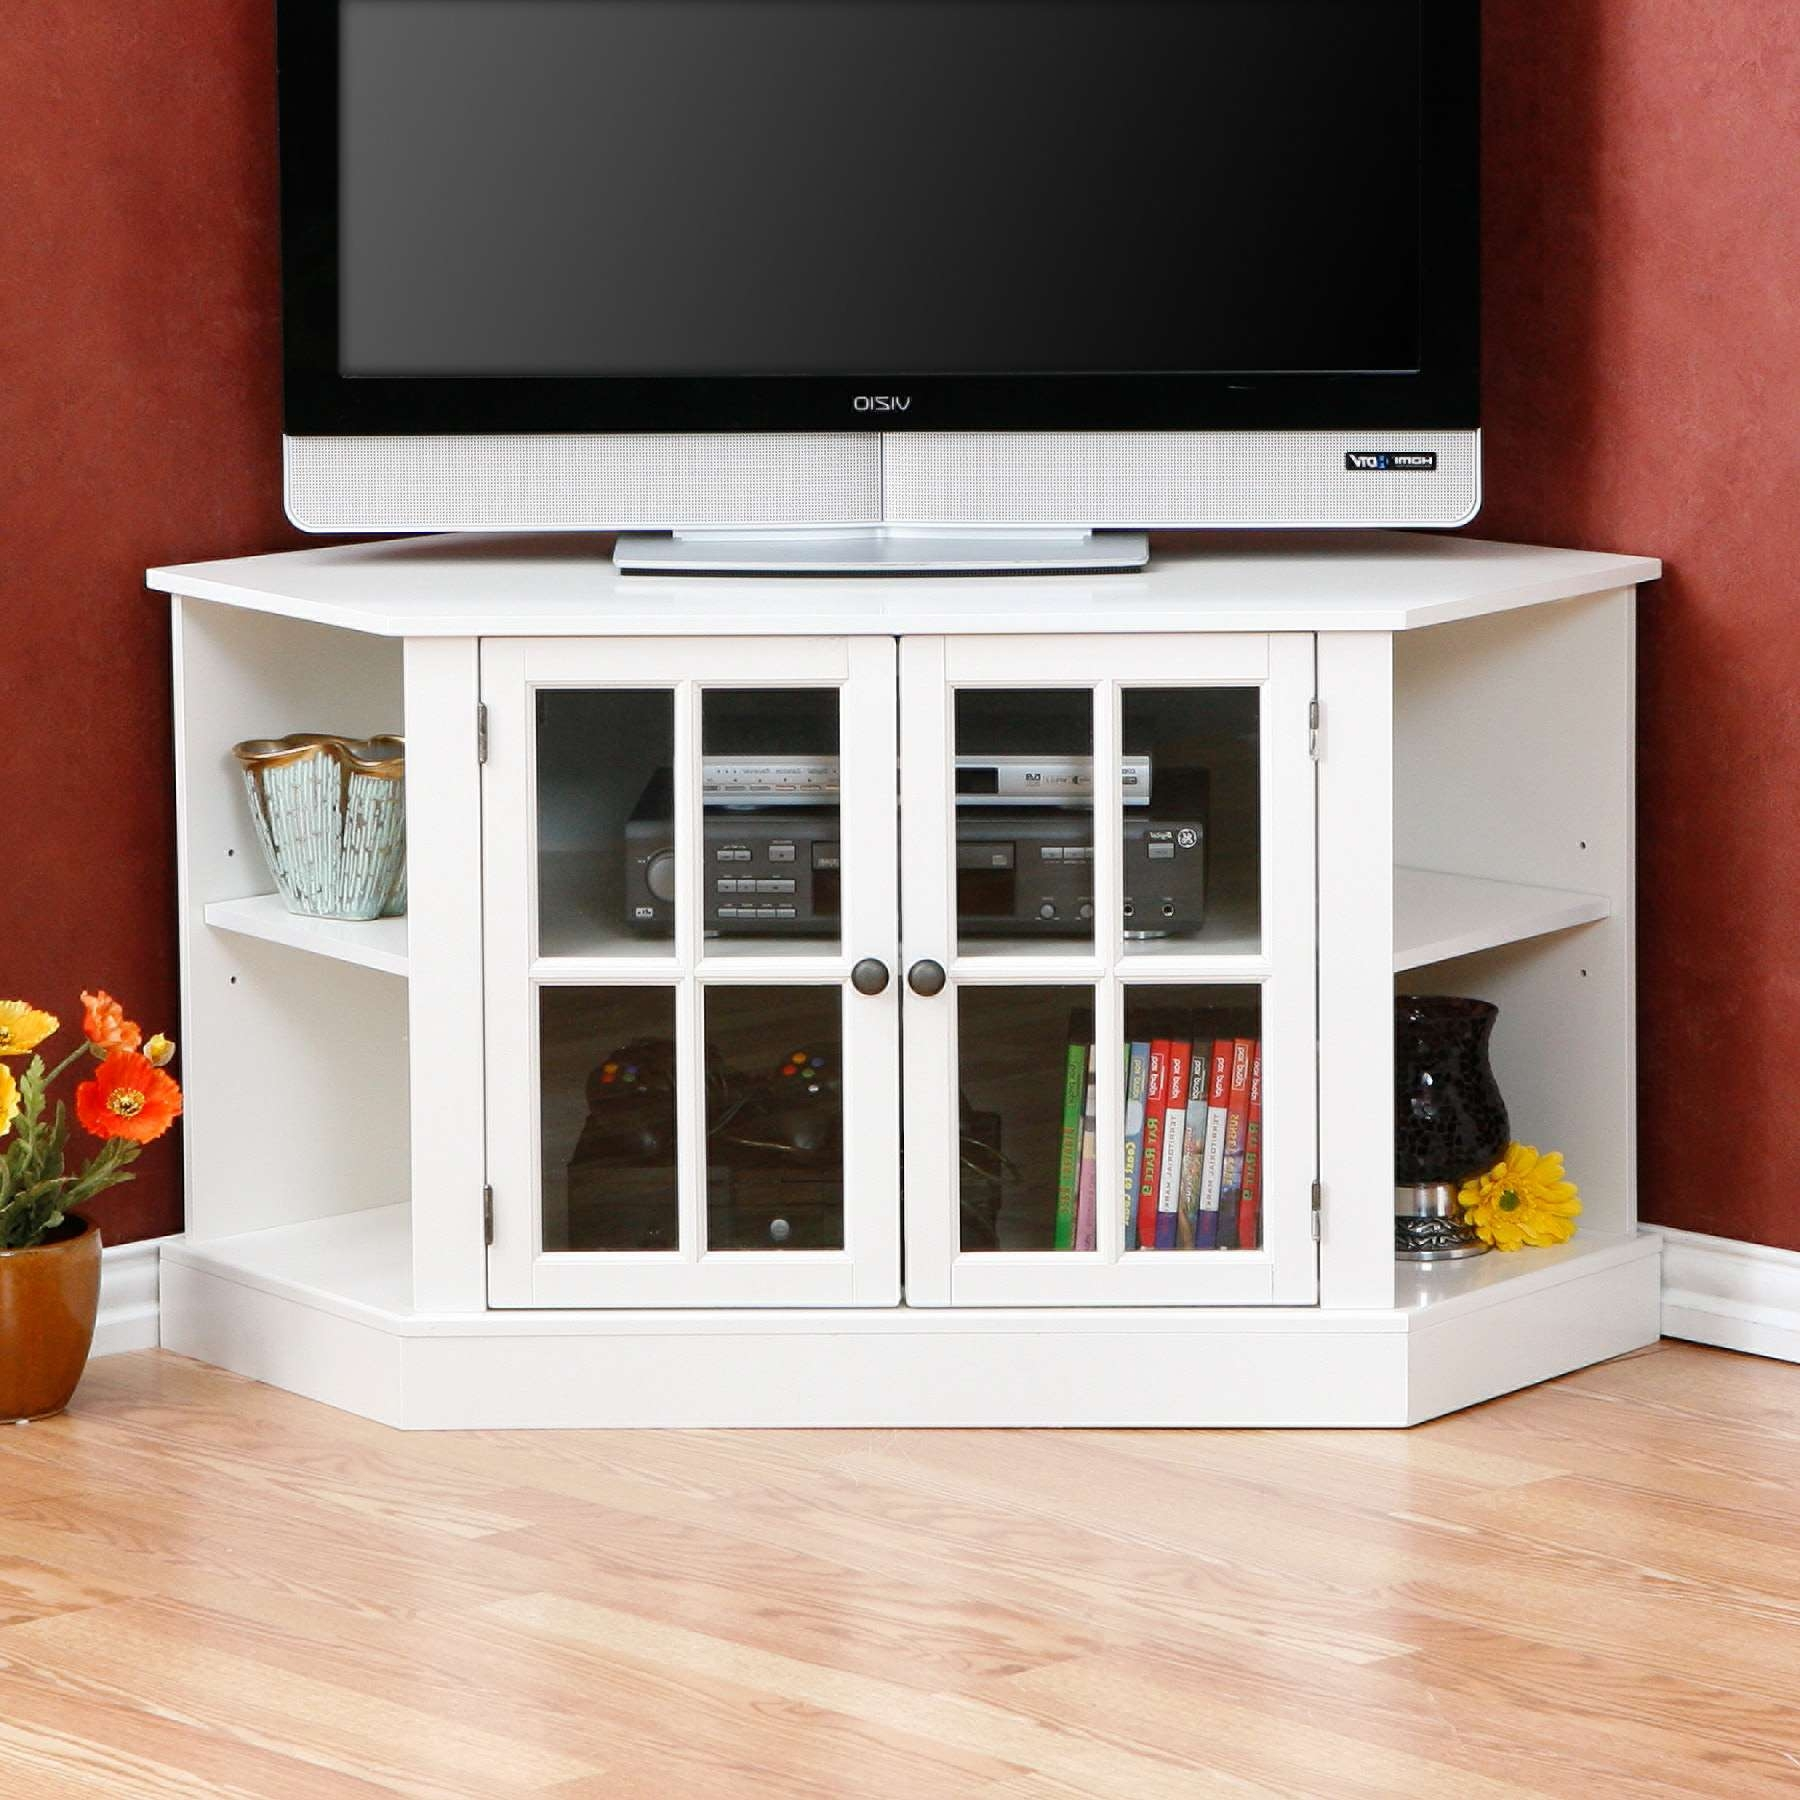 White Wooden Tv Stand With Shelves And Doors On Brown Wooden Floor Pertaining To White Wood Corner Tv Stands (View 15 of 15)